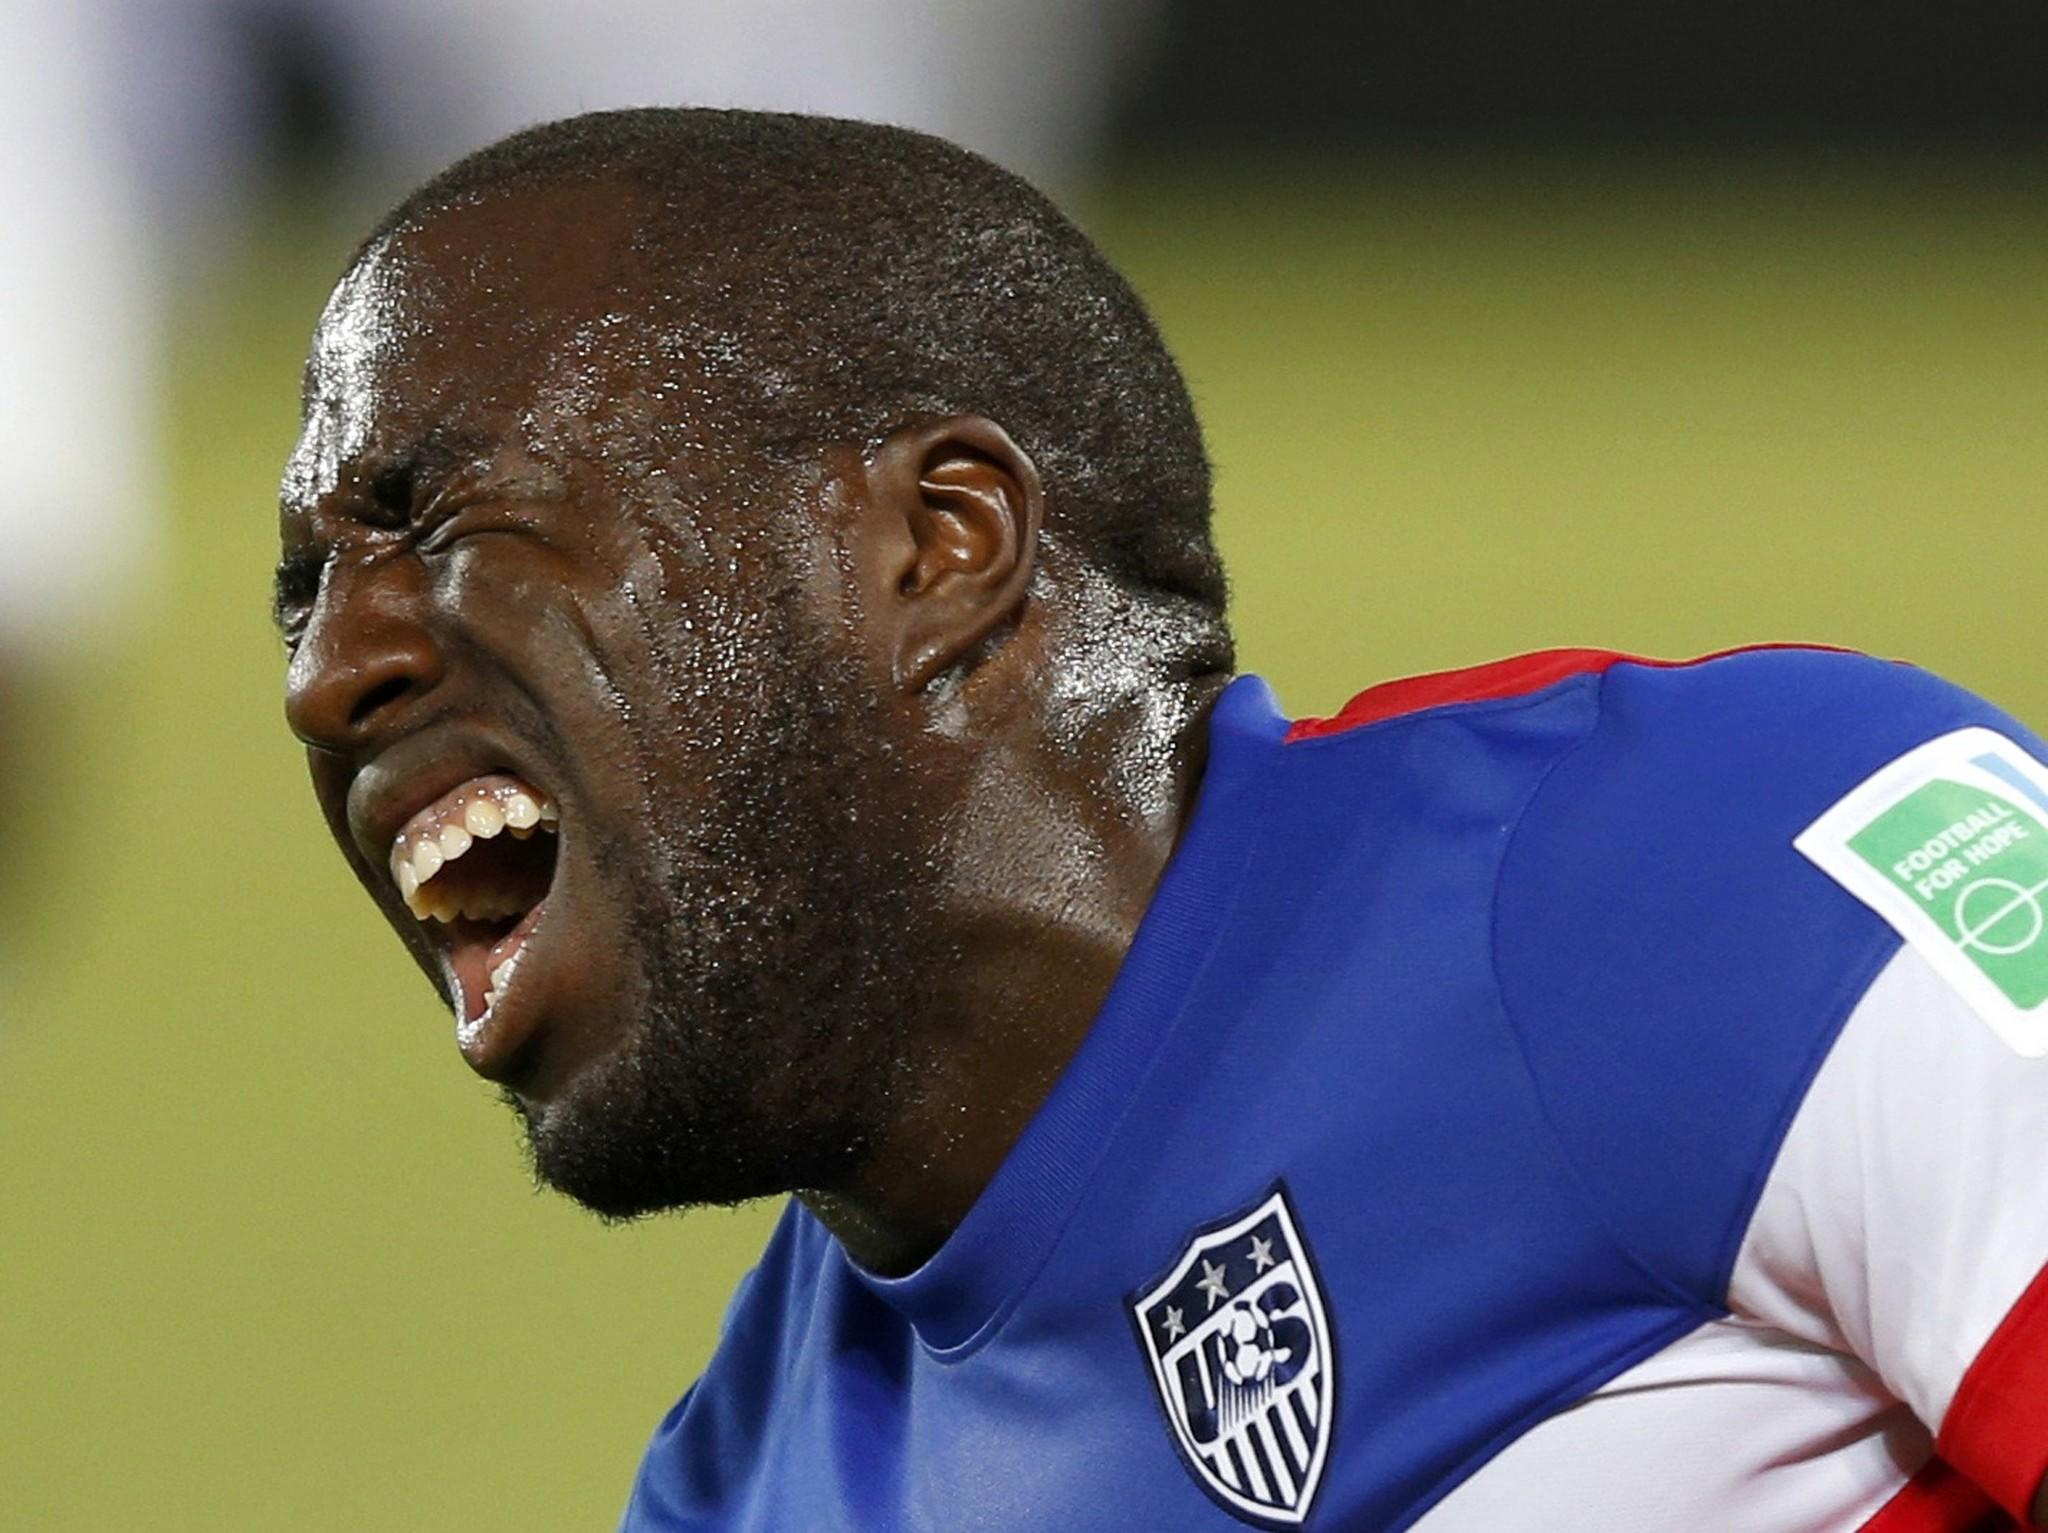 Jozy Altidore of the U.S. grimaces after sustaining an injury during their 2014 World Cup soccer match against Ghana.